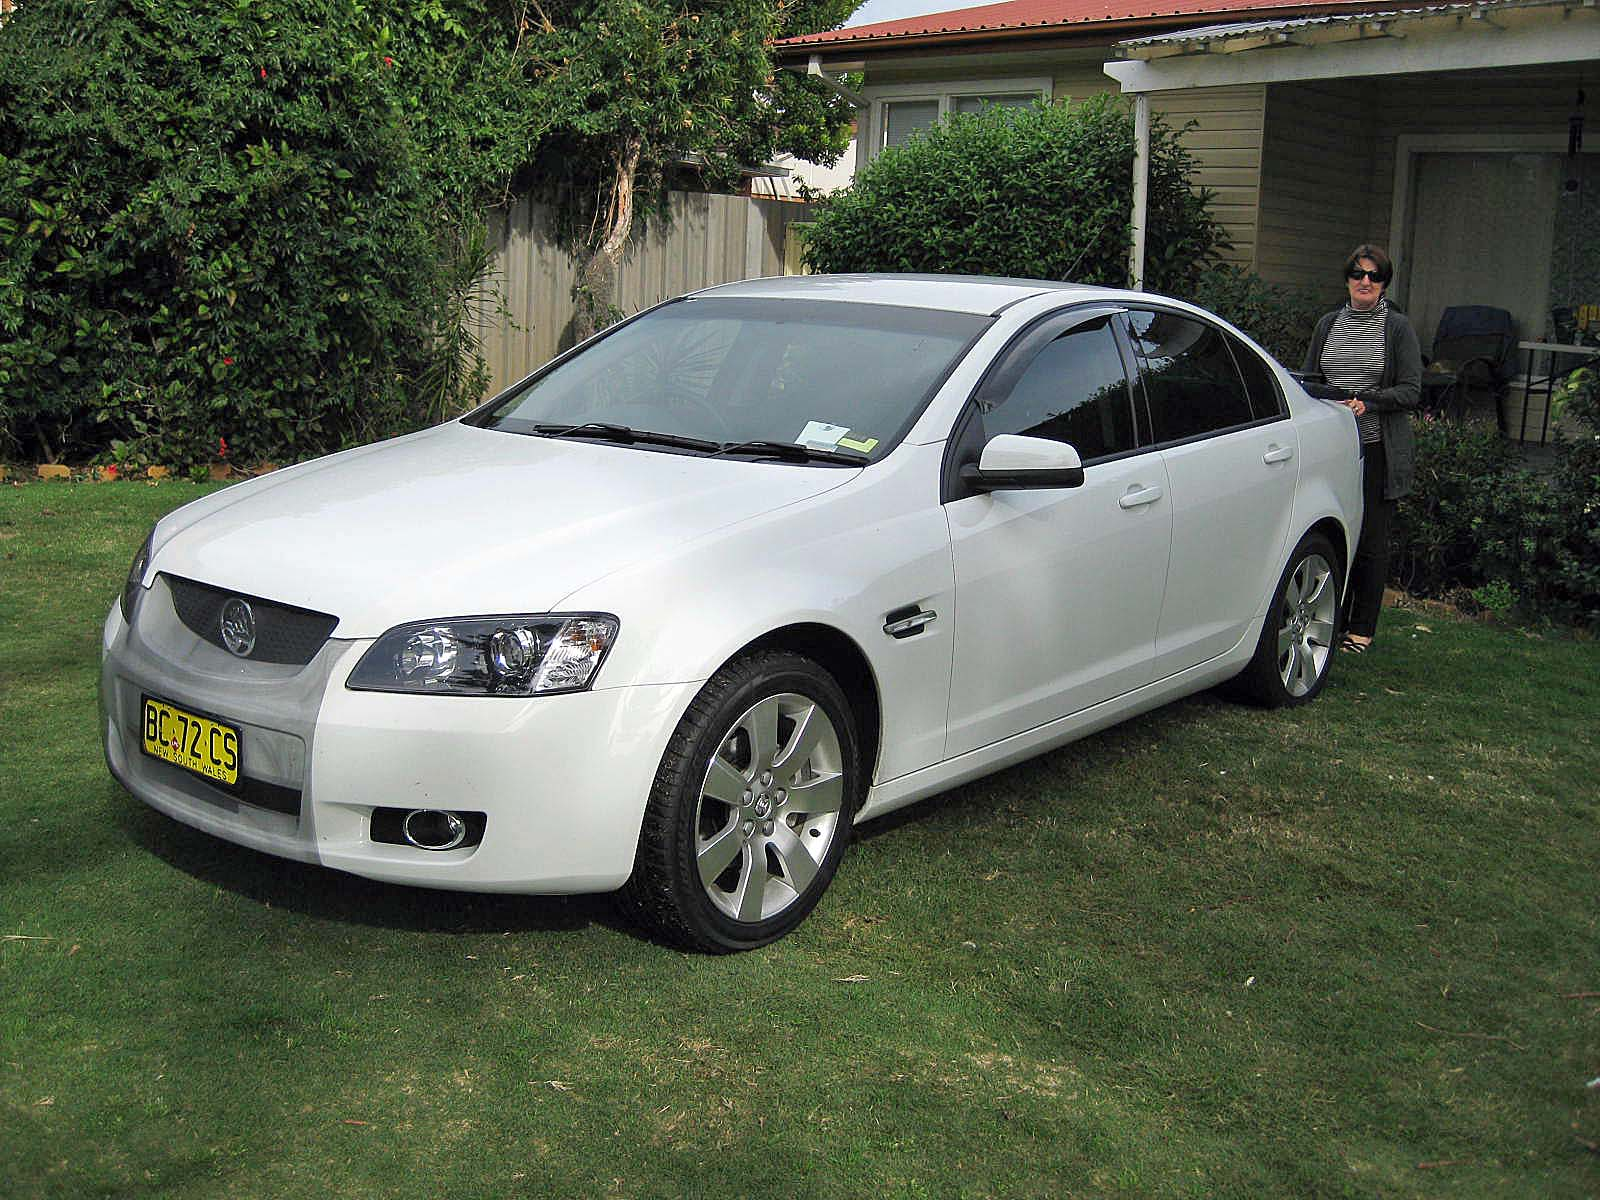 Cav's Blog: Holden Commodore – A Great Australian Car?